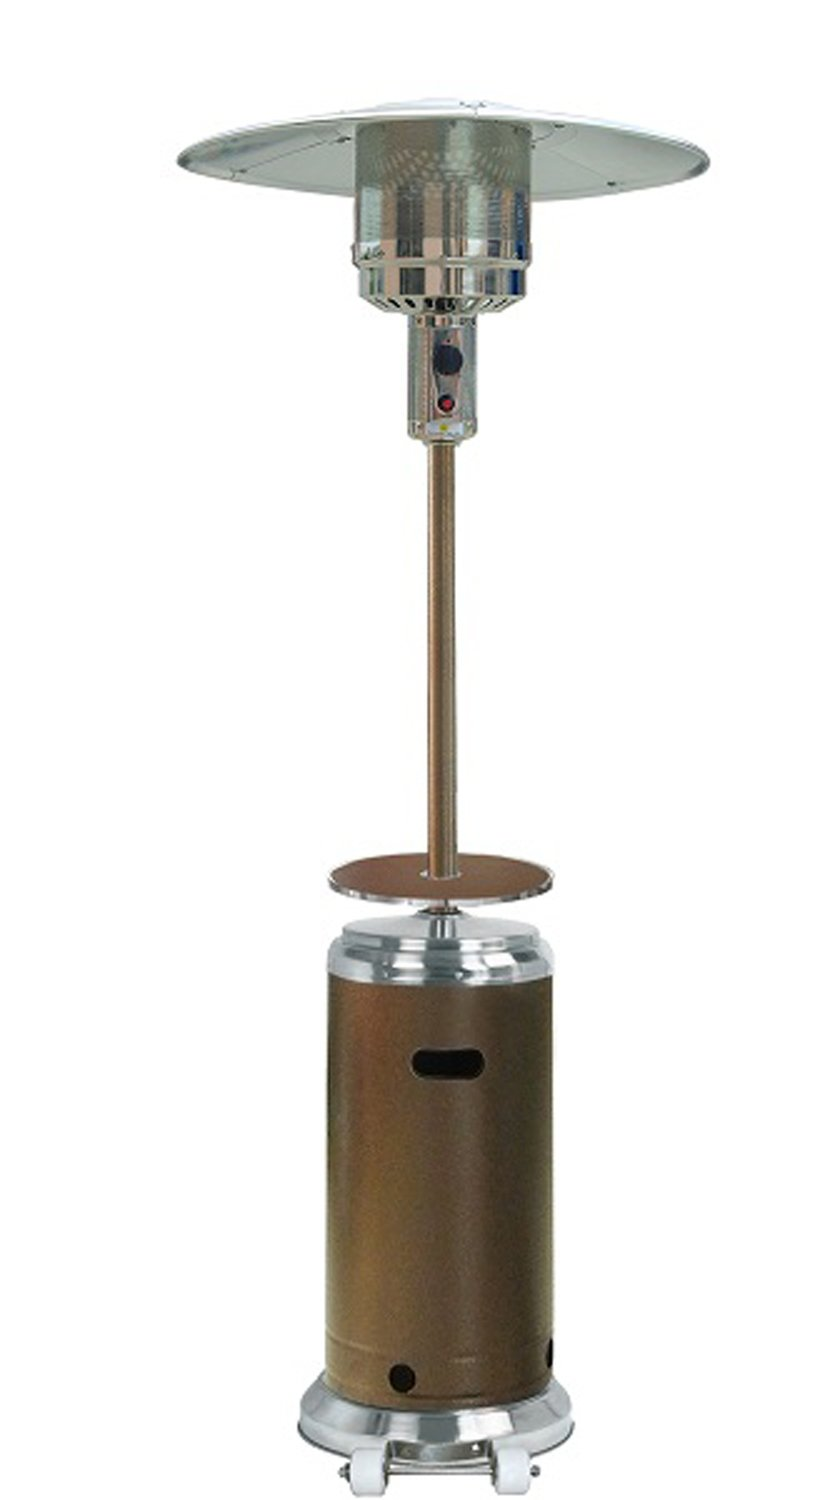 "87"" Tall Outdoor Patio Heater with Table-- Hammered Bronze w/ Stainless Steel"